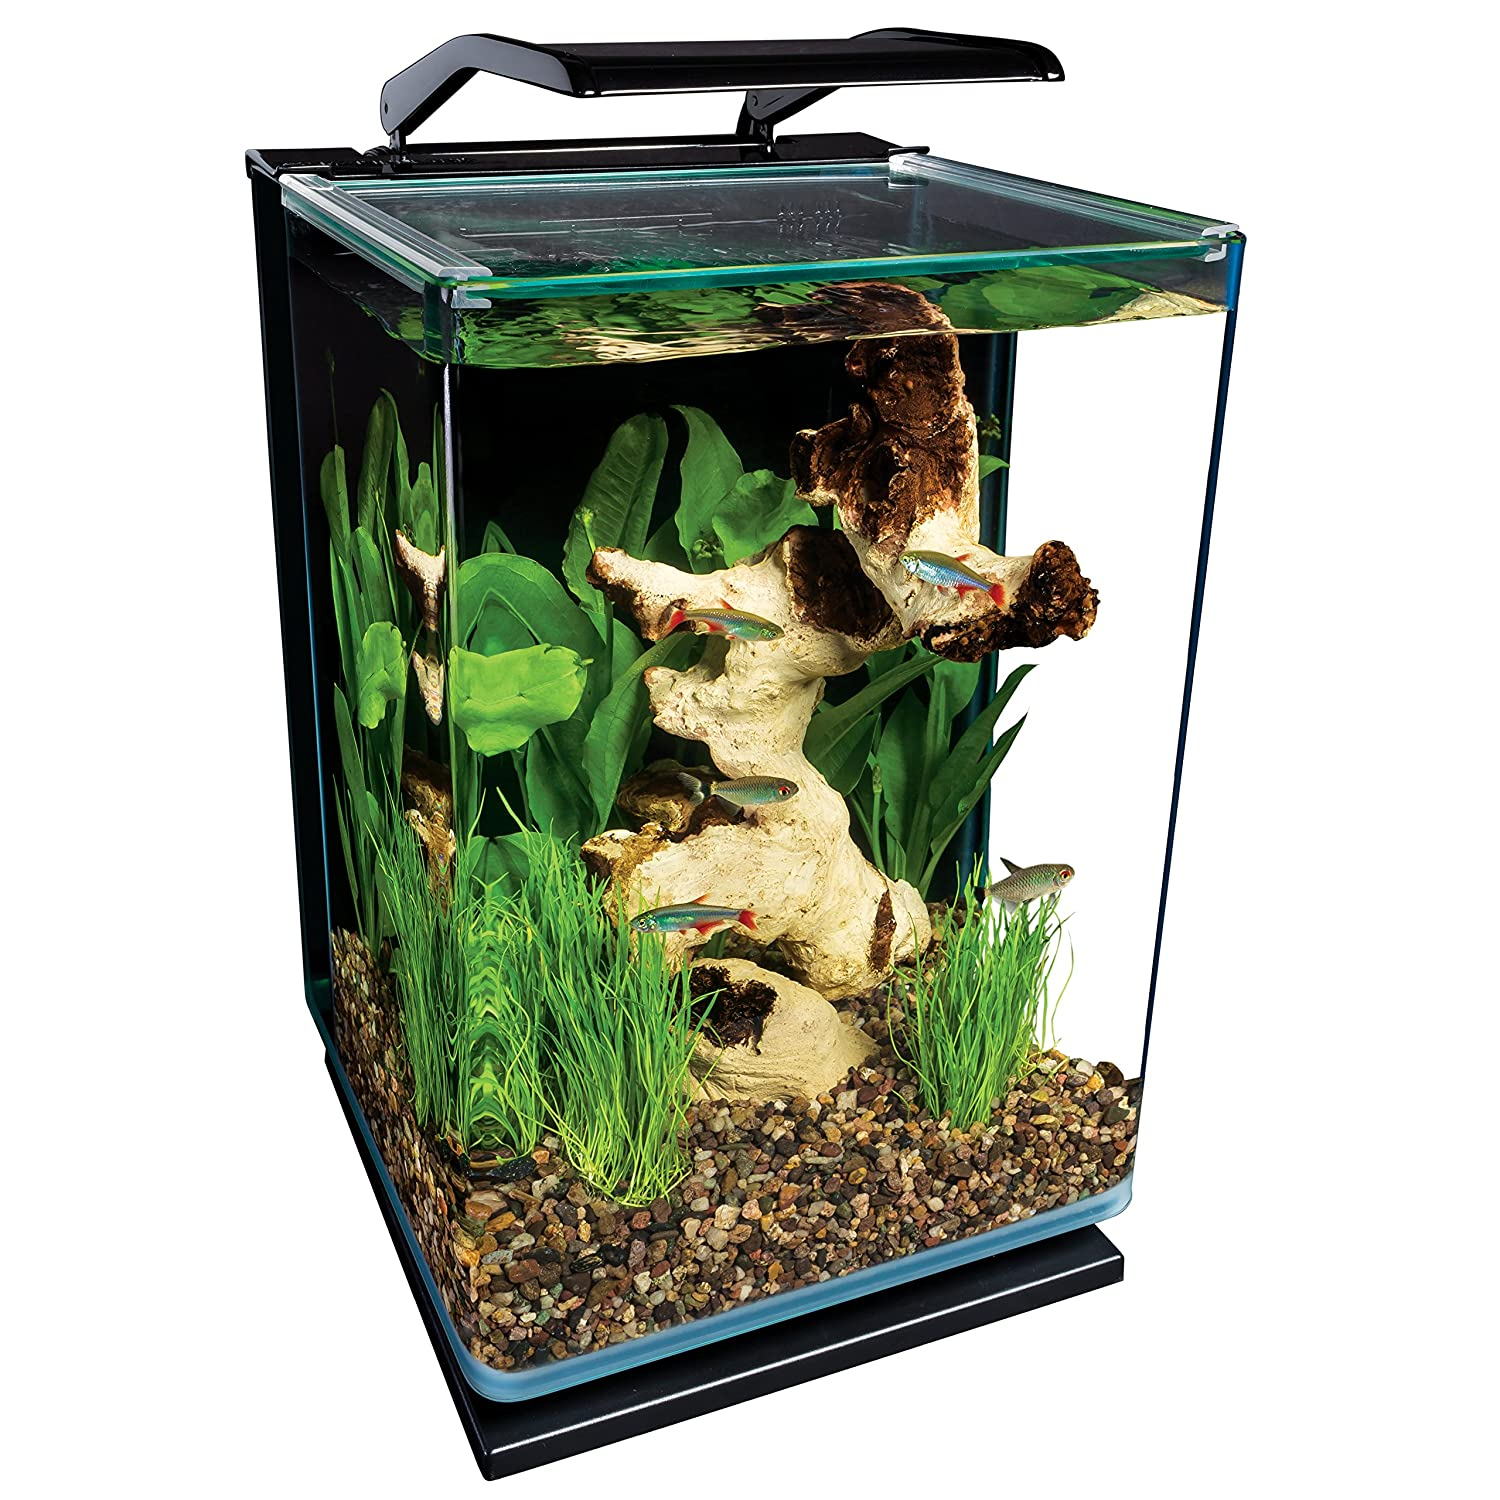 Fish Blows Starter Kits Aquarium Aquatic Water Tank Led